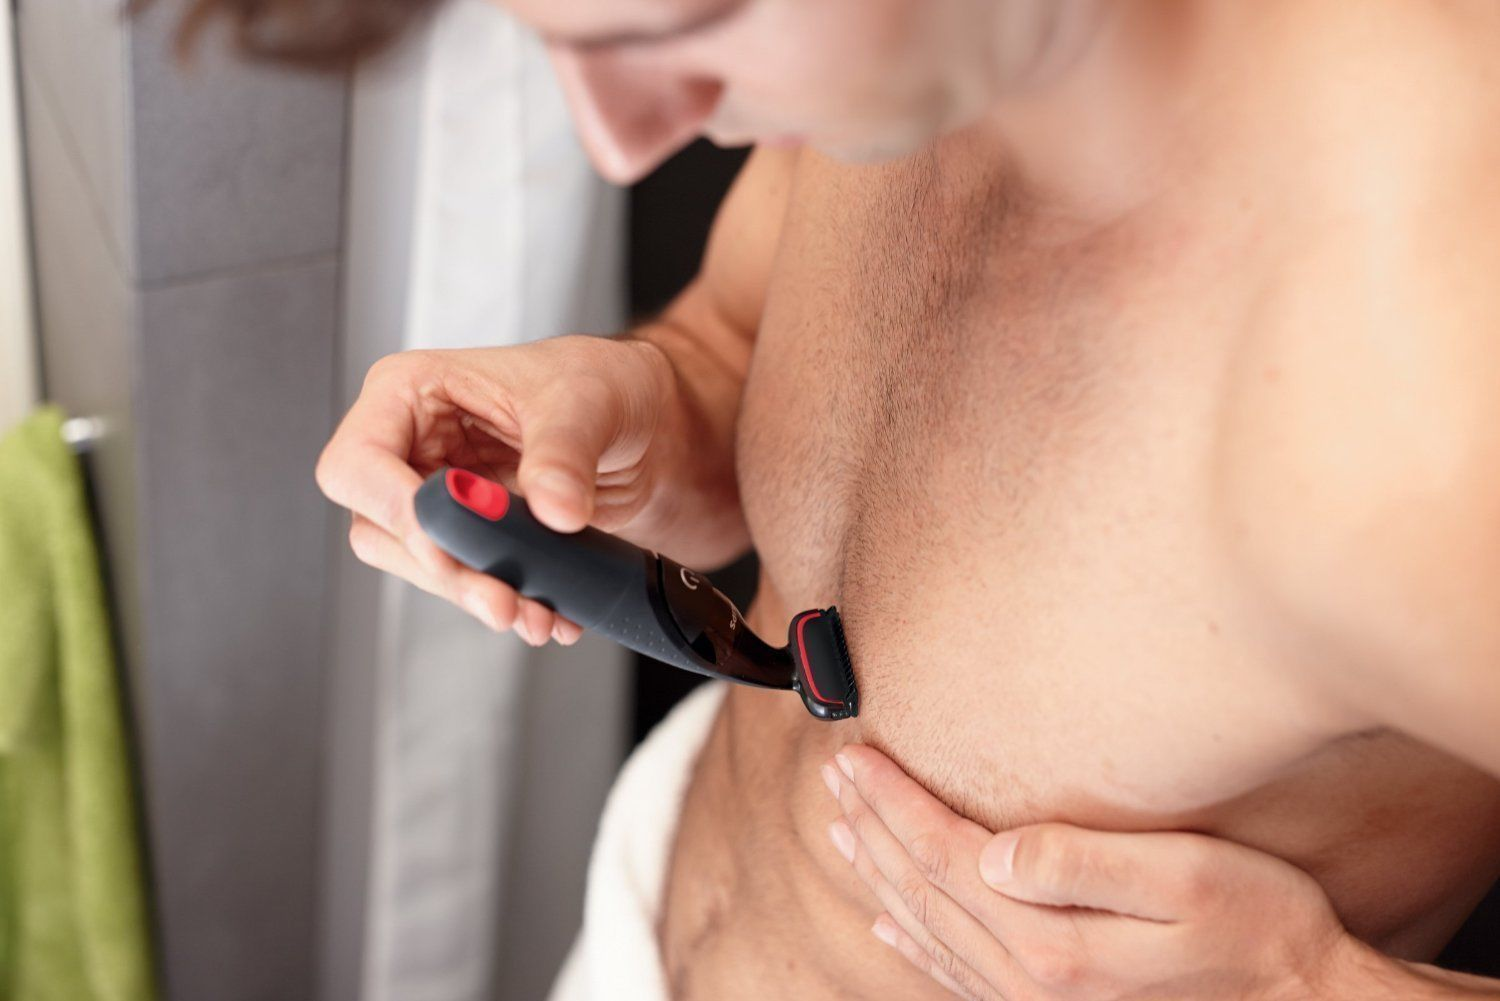 Manscaping Product Guide: Trimmers, Clippers, Body Groomers, Shavers